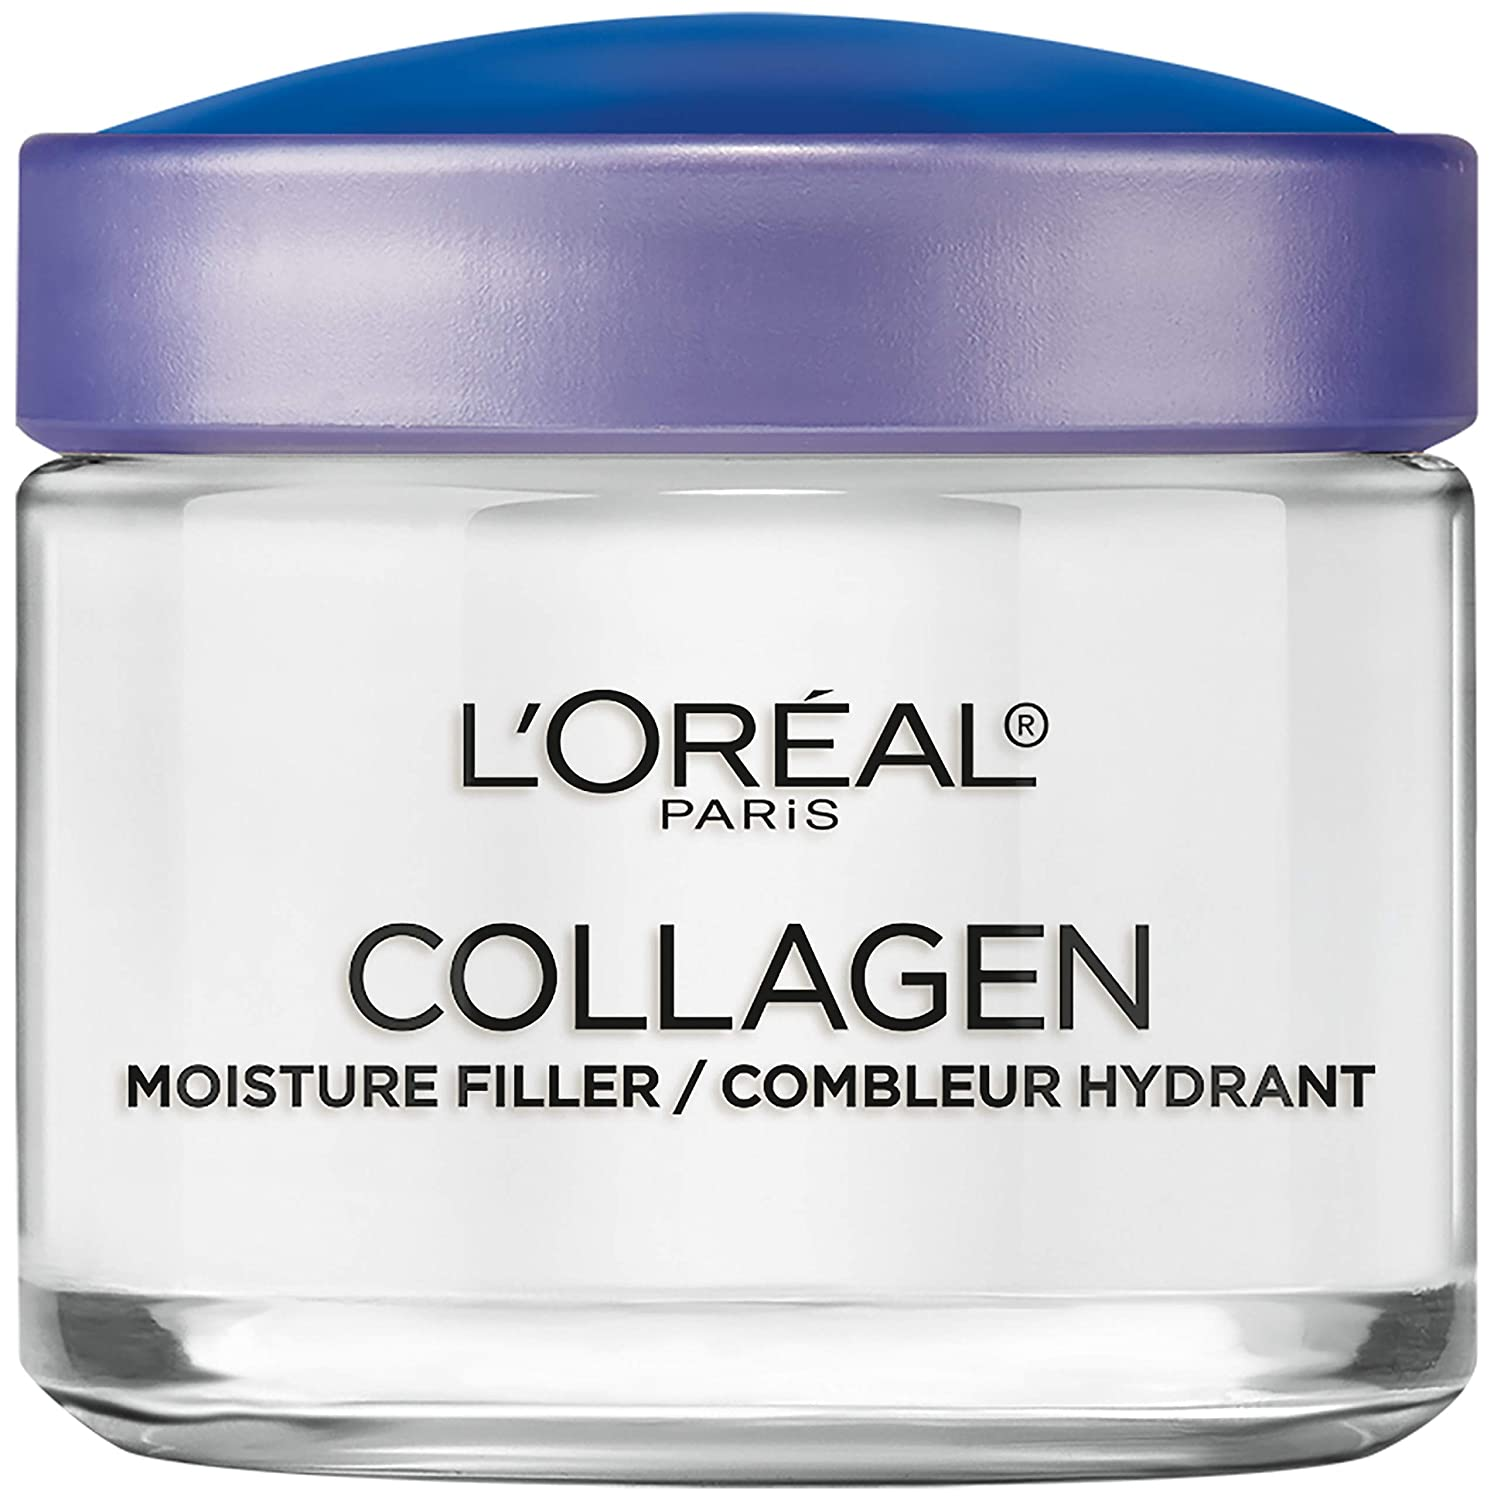 Collagen Face Moisturizer by L'Oreal Paris Skin Care I Day and Night Cream I Anti-Aging Face Cream to Smooth Wrinkles I Non-Greasy I 3.4 Ounce (Pack of 1)